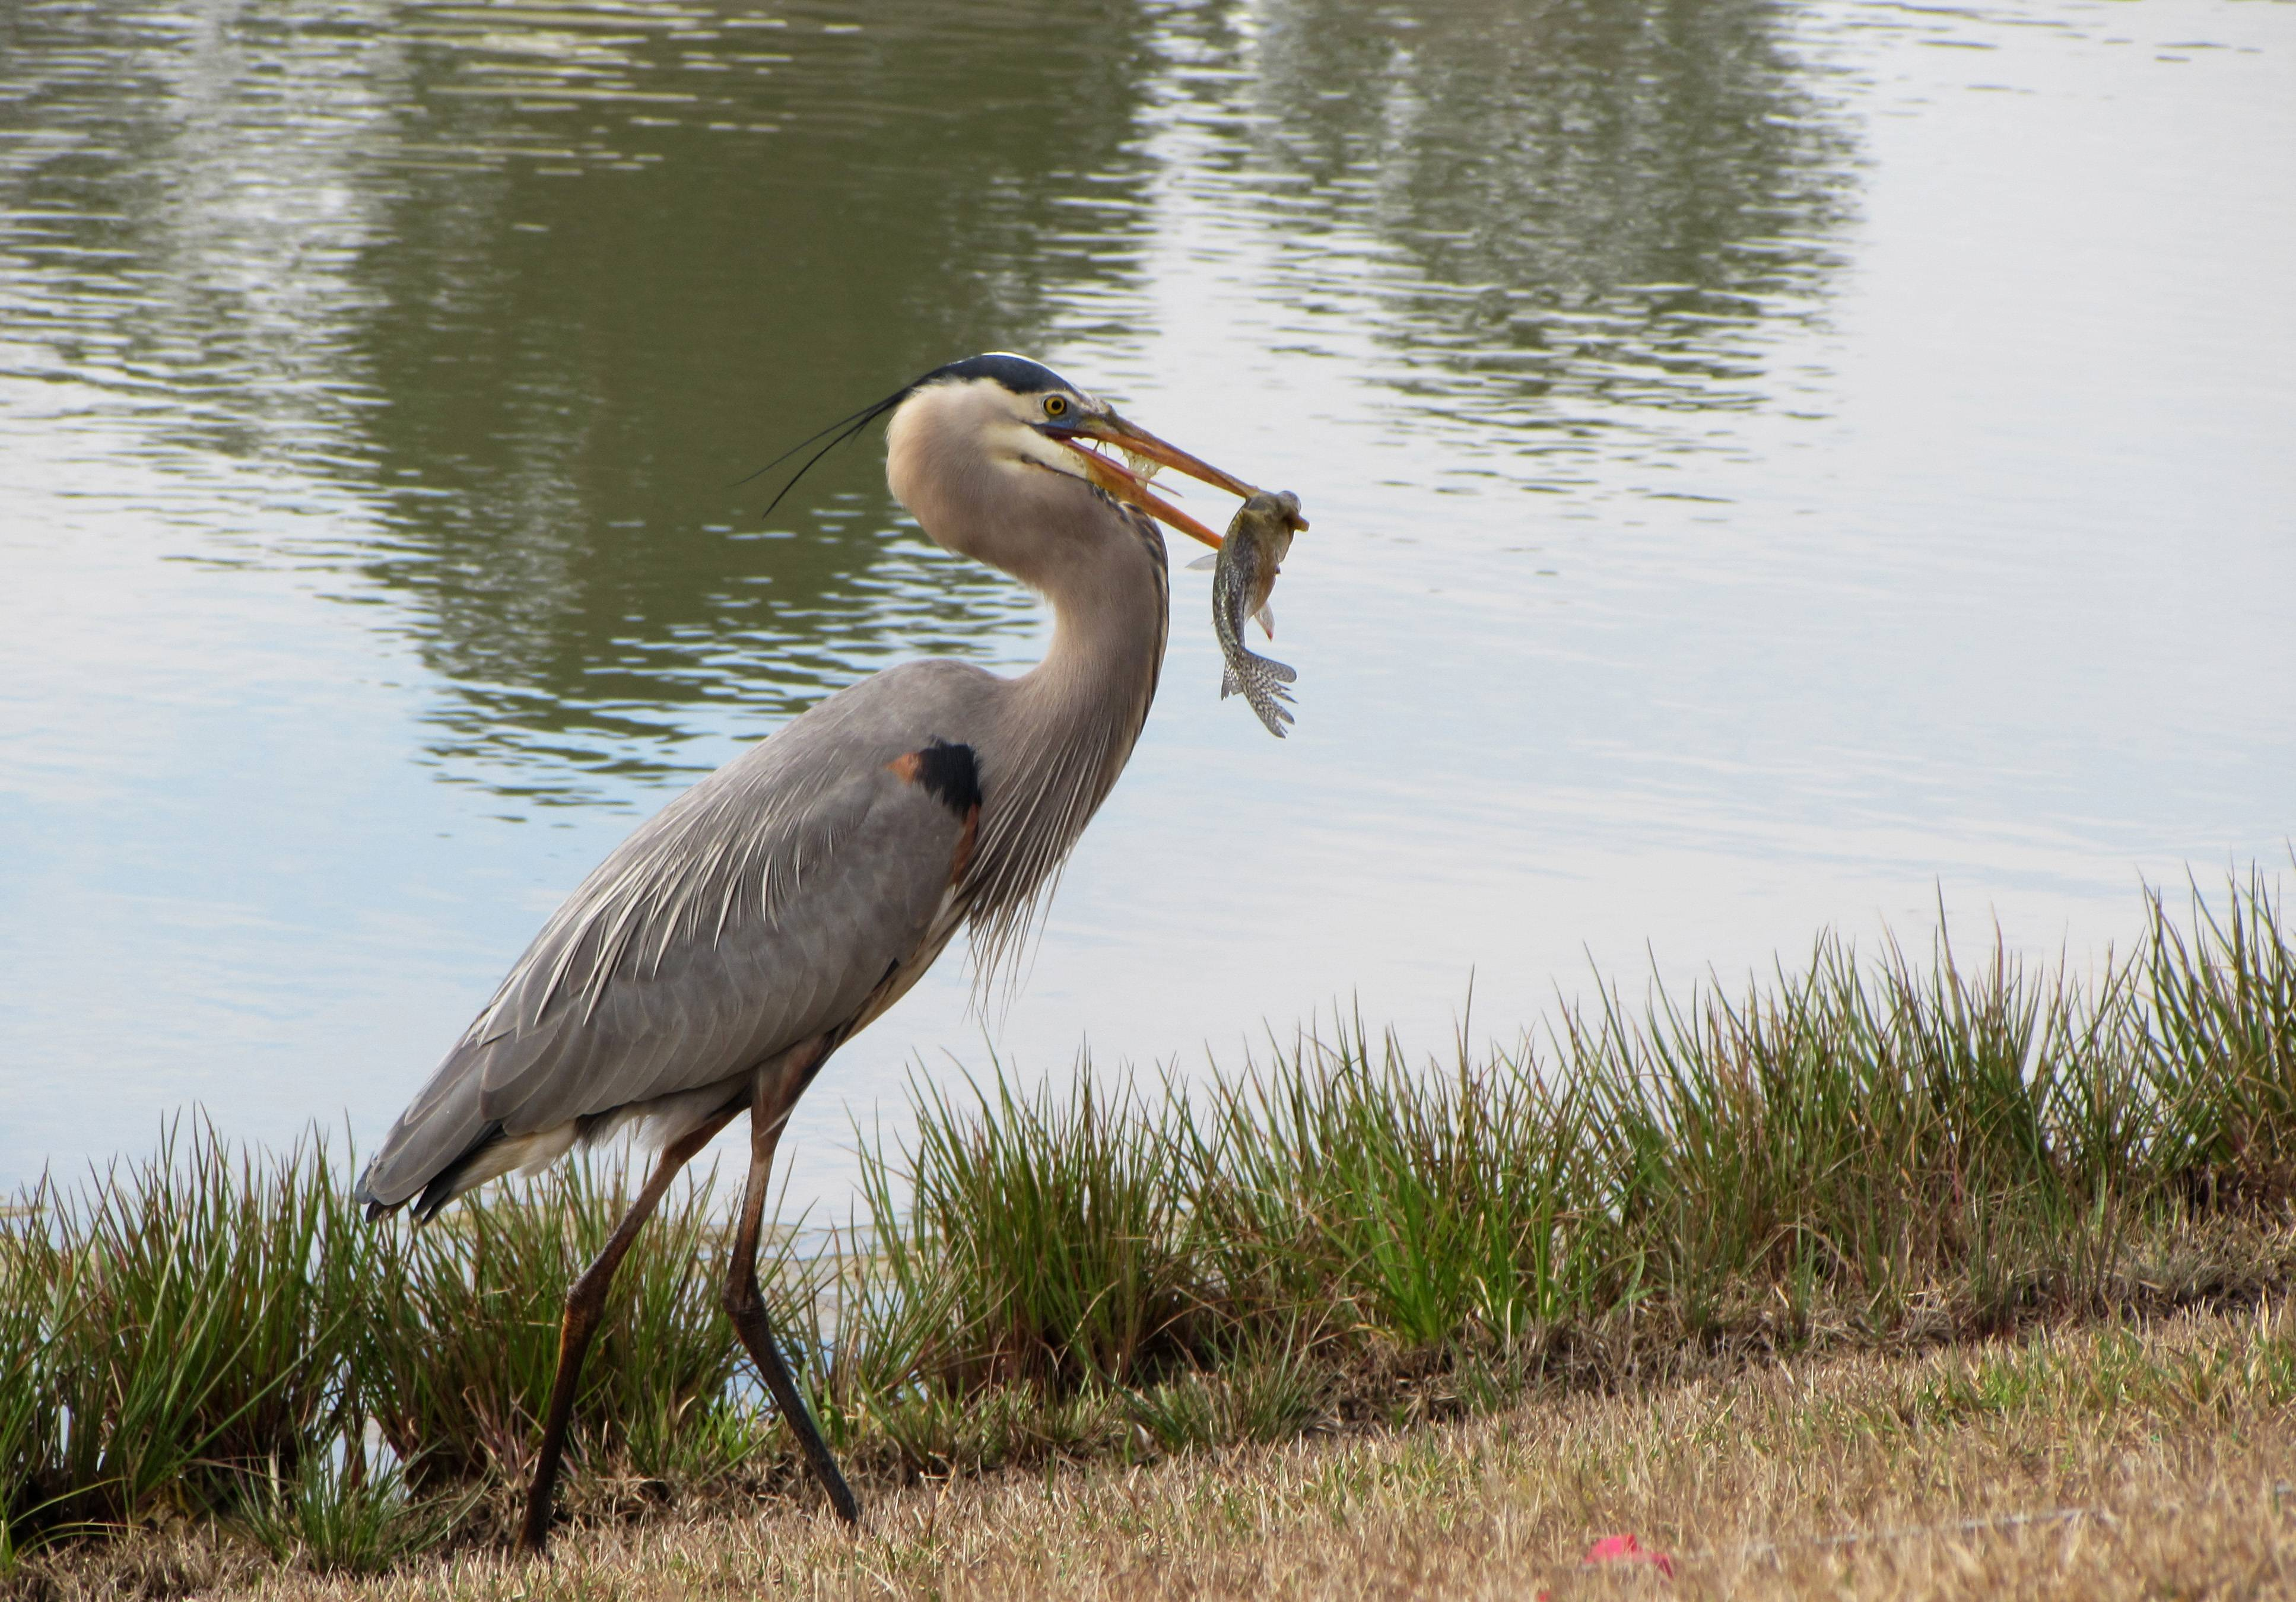 A Great Blue Heron searches for breakfast in a pond in Hilton Head, South Carolina on March 1.